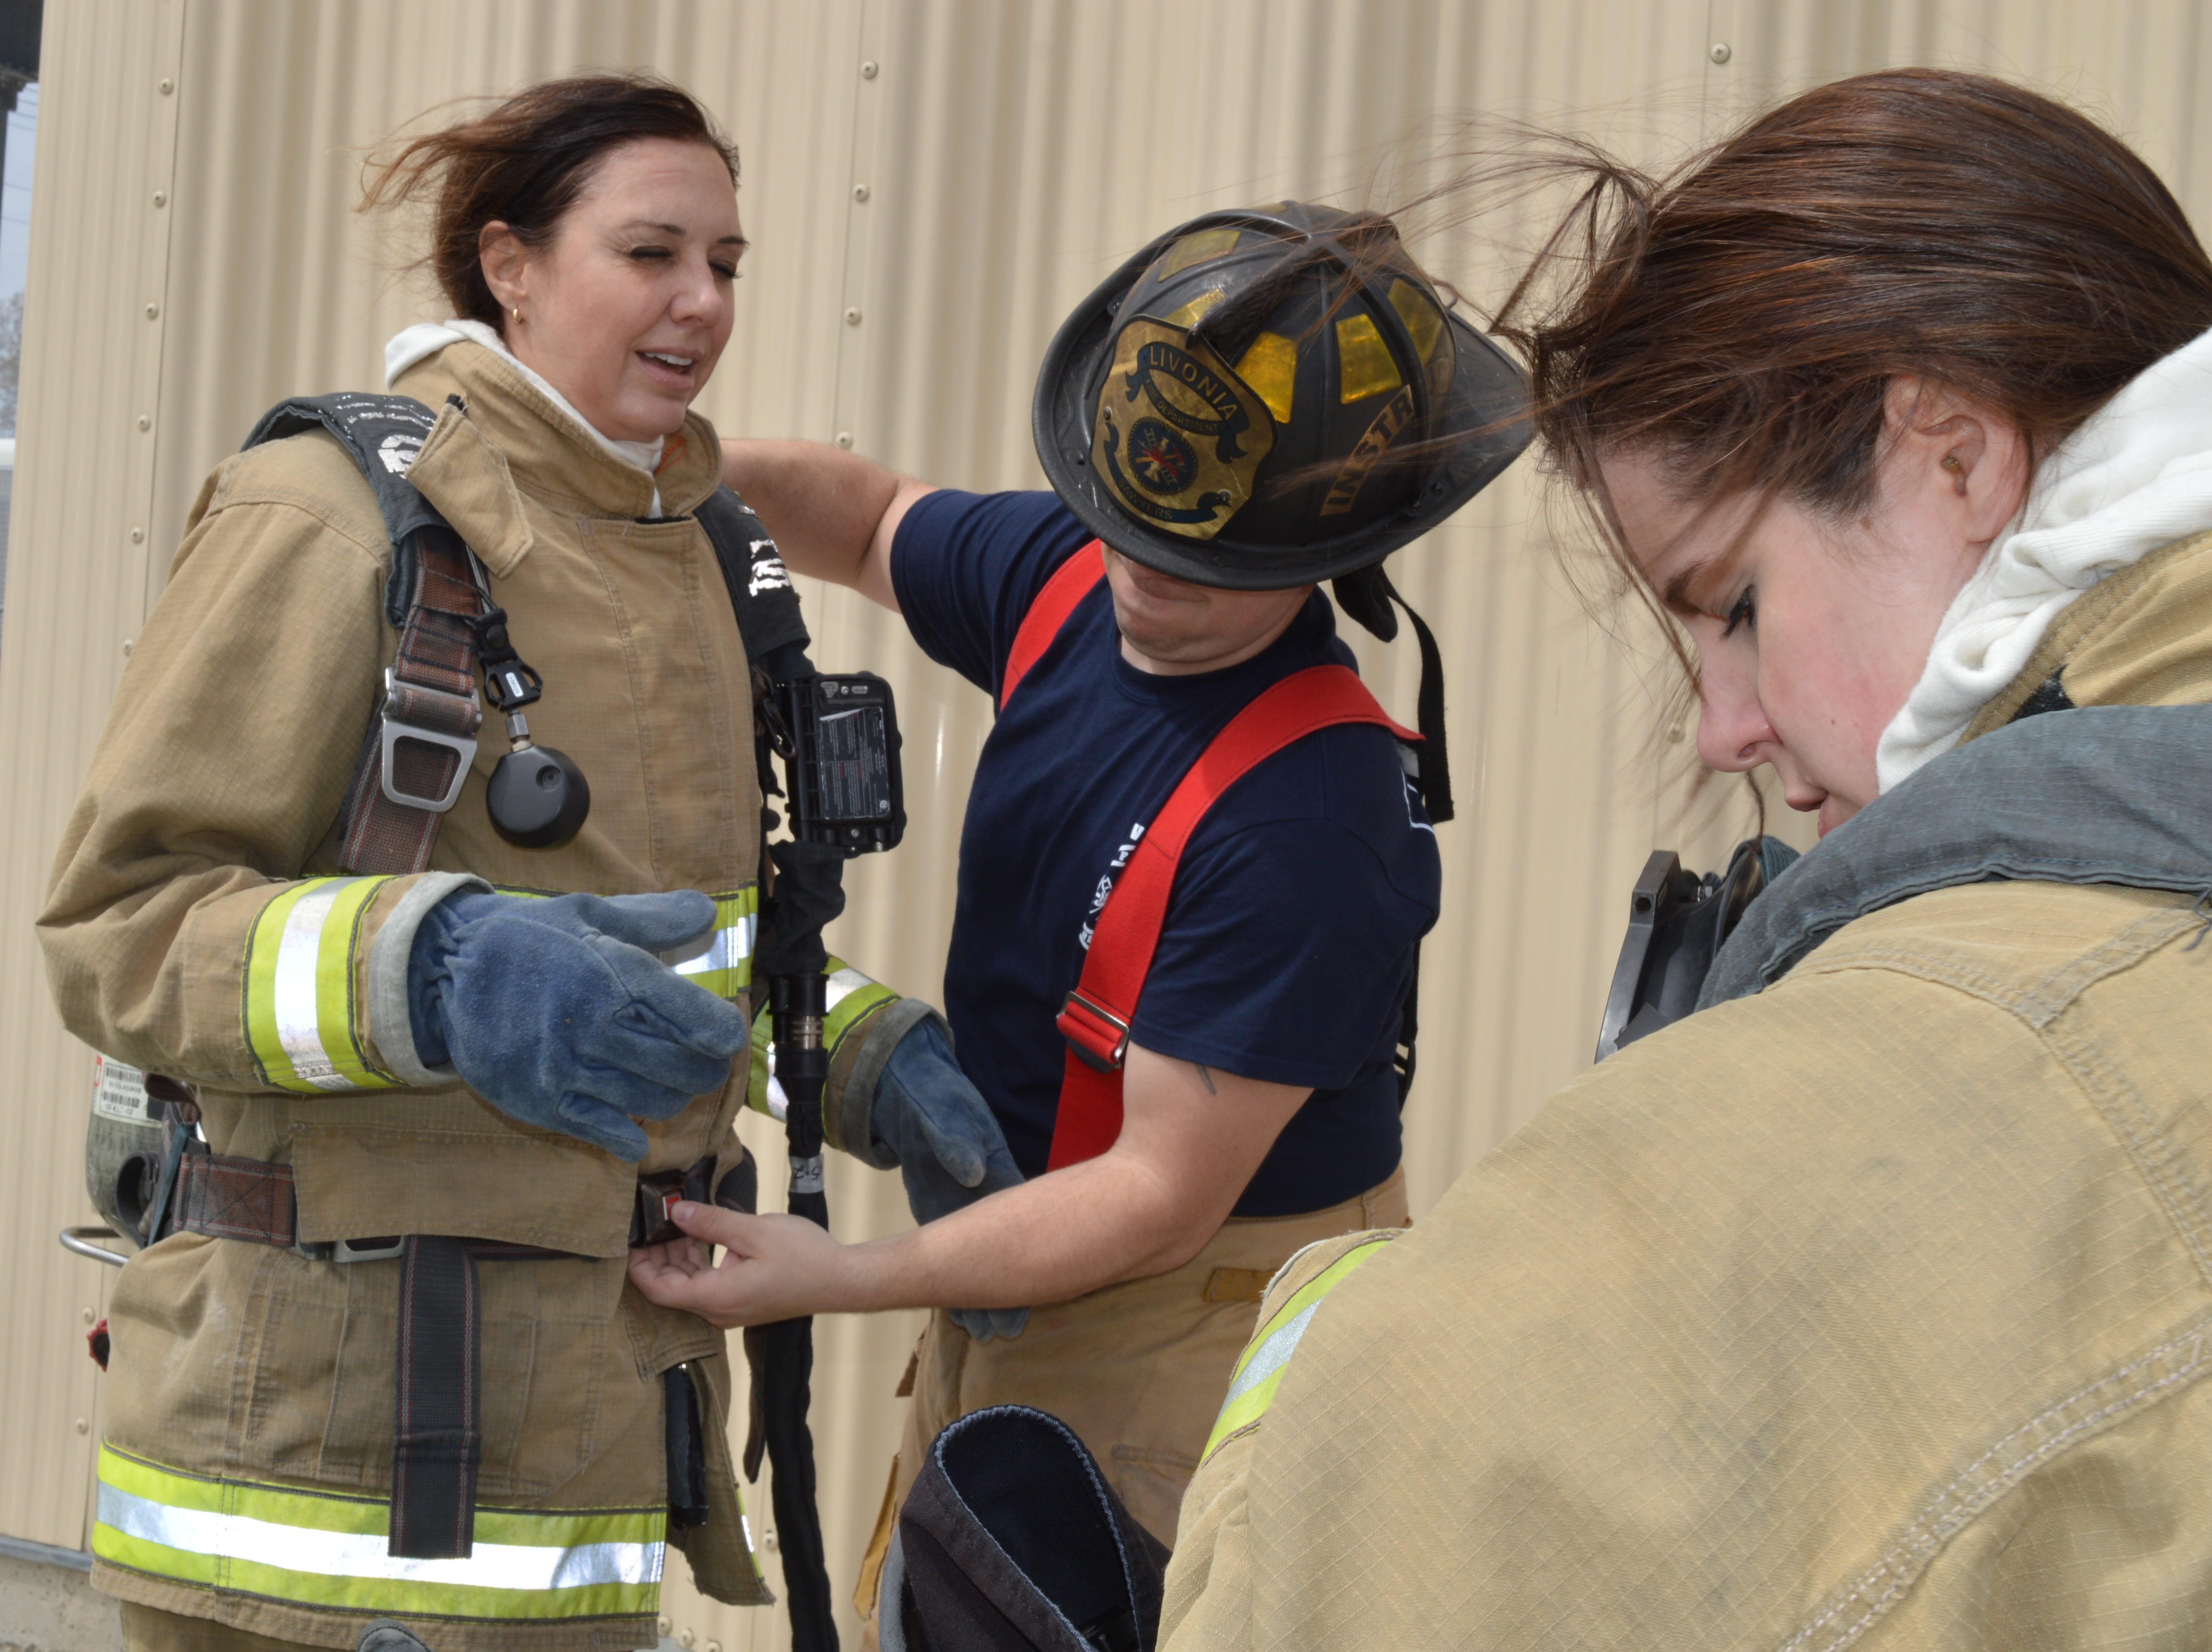 A Livonia firefighter helps state Sen. Dayna Polehanki remove gear after a Fire Ops 101 drill on Saturday, May 4, 2019.  State Rep. Laurie Pohutsky is in the foreground.